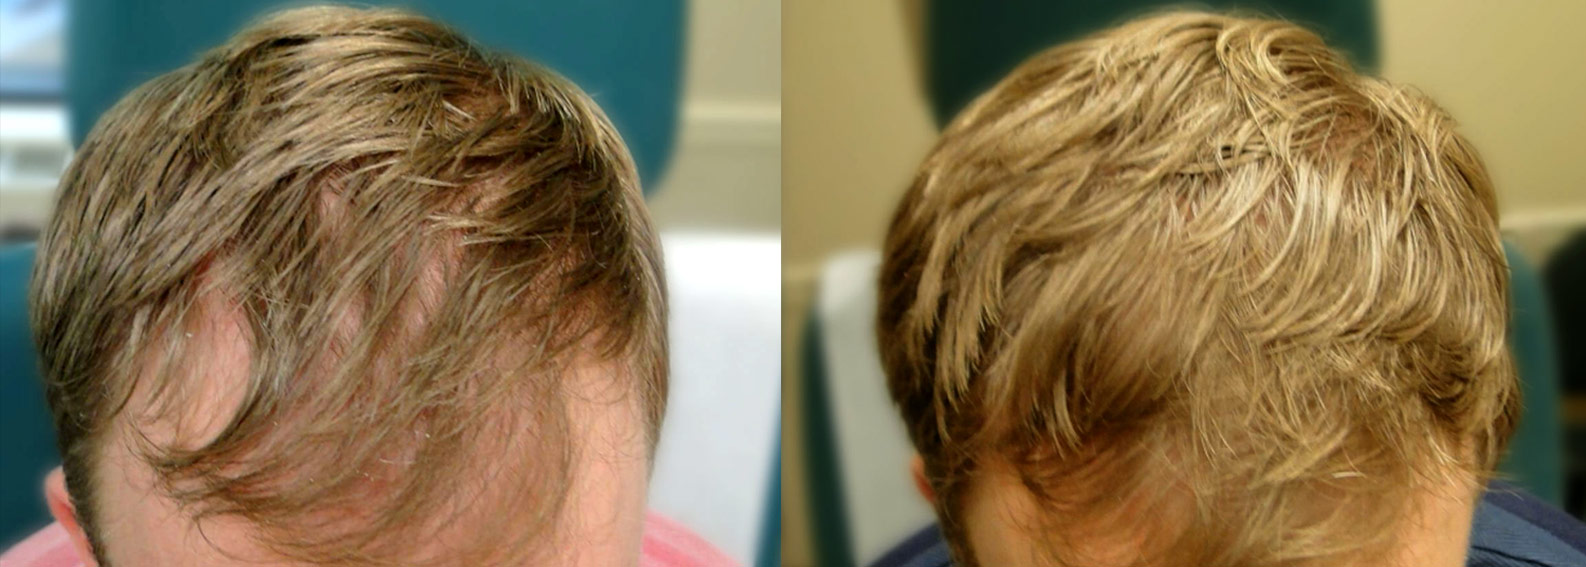 PRP Therapy Before & After Photo